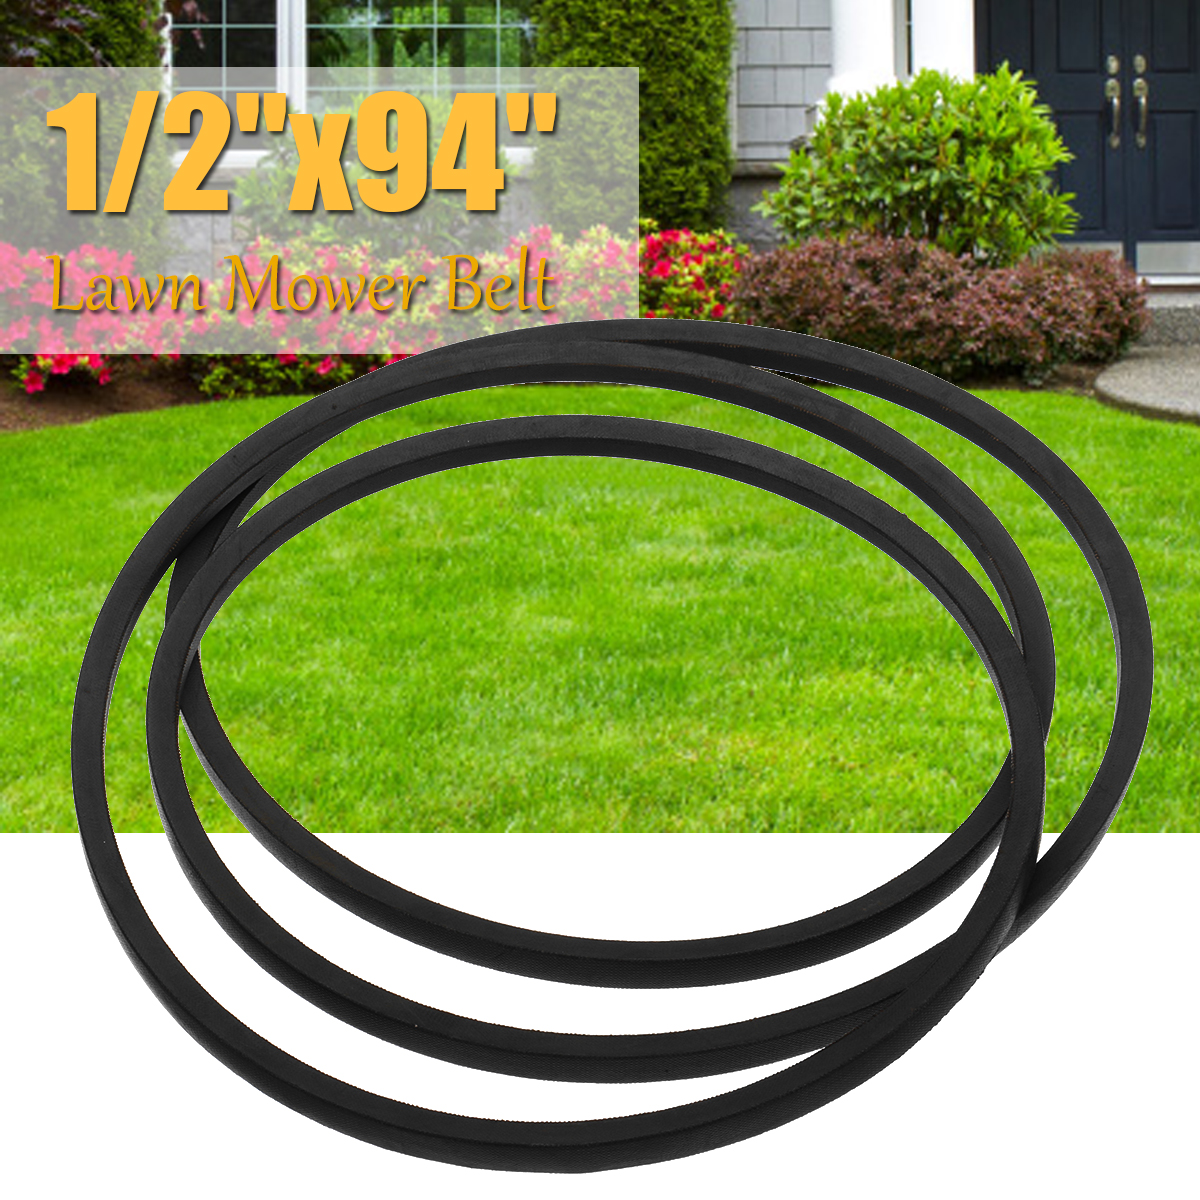 Tractor Drive Band V-Belt Vee Type Transmission Tapes A92 Yard Machine Lawn Mower Belt 13mm 1/2